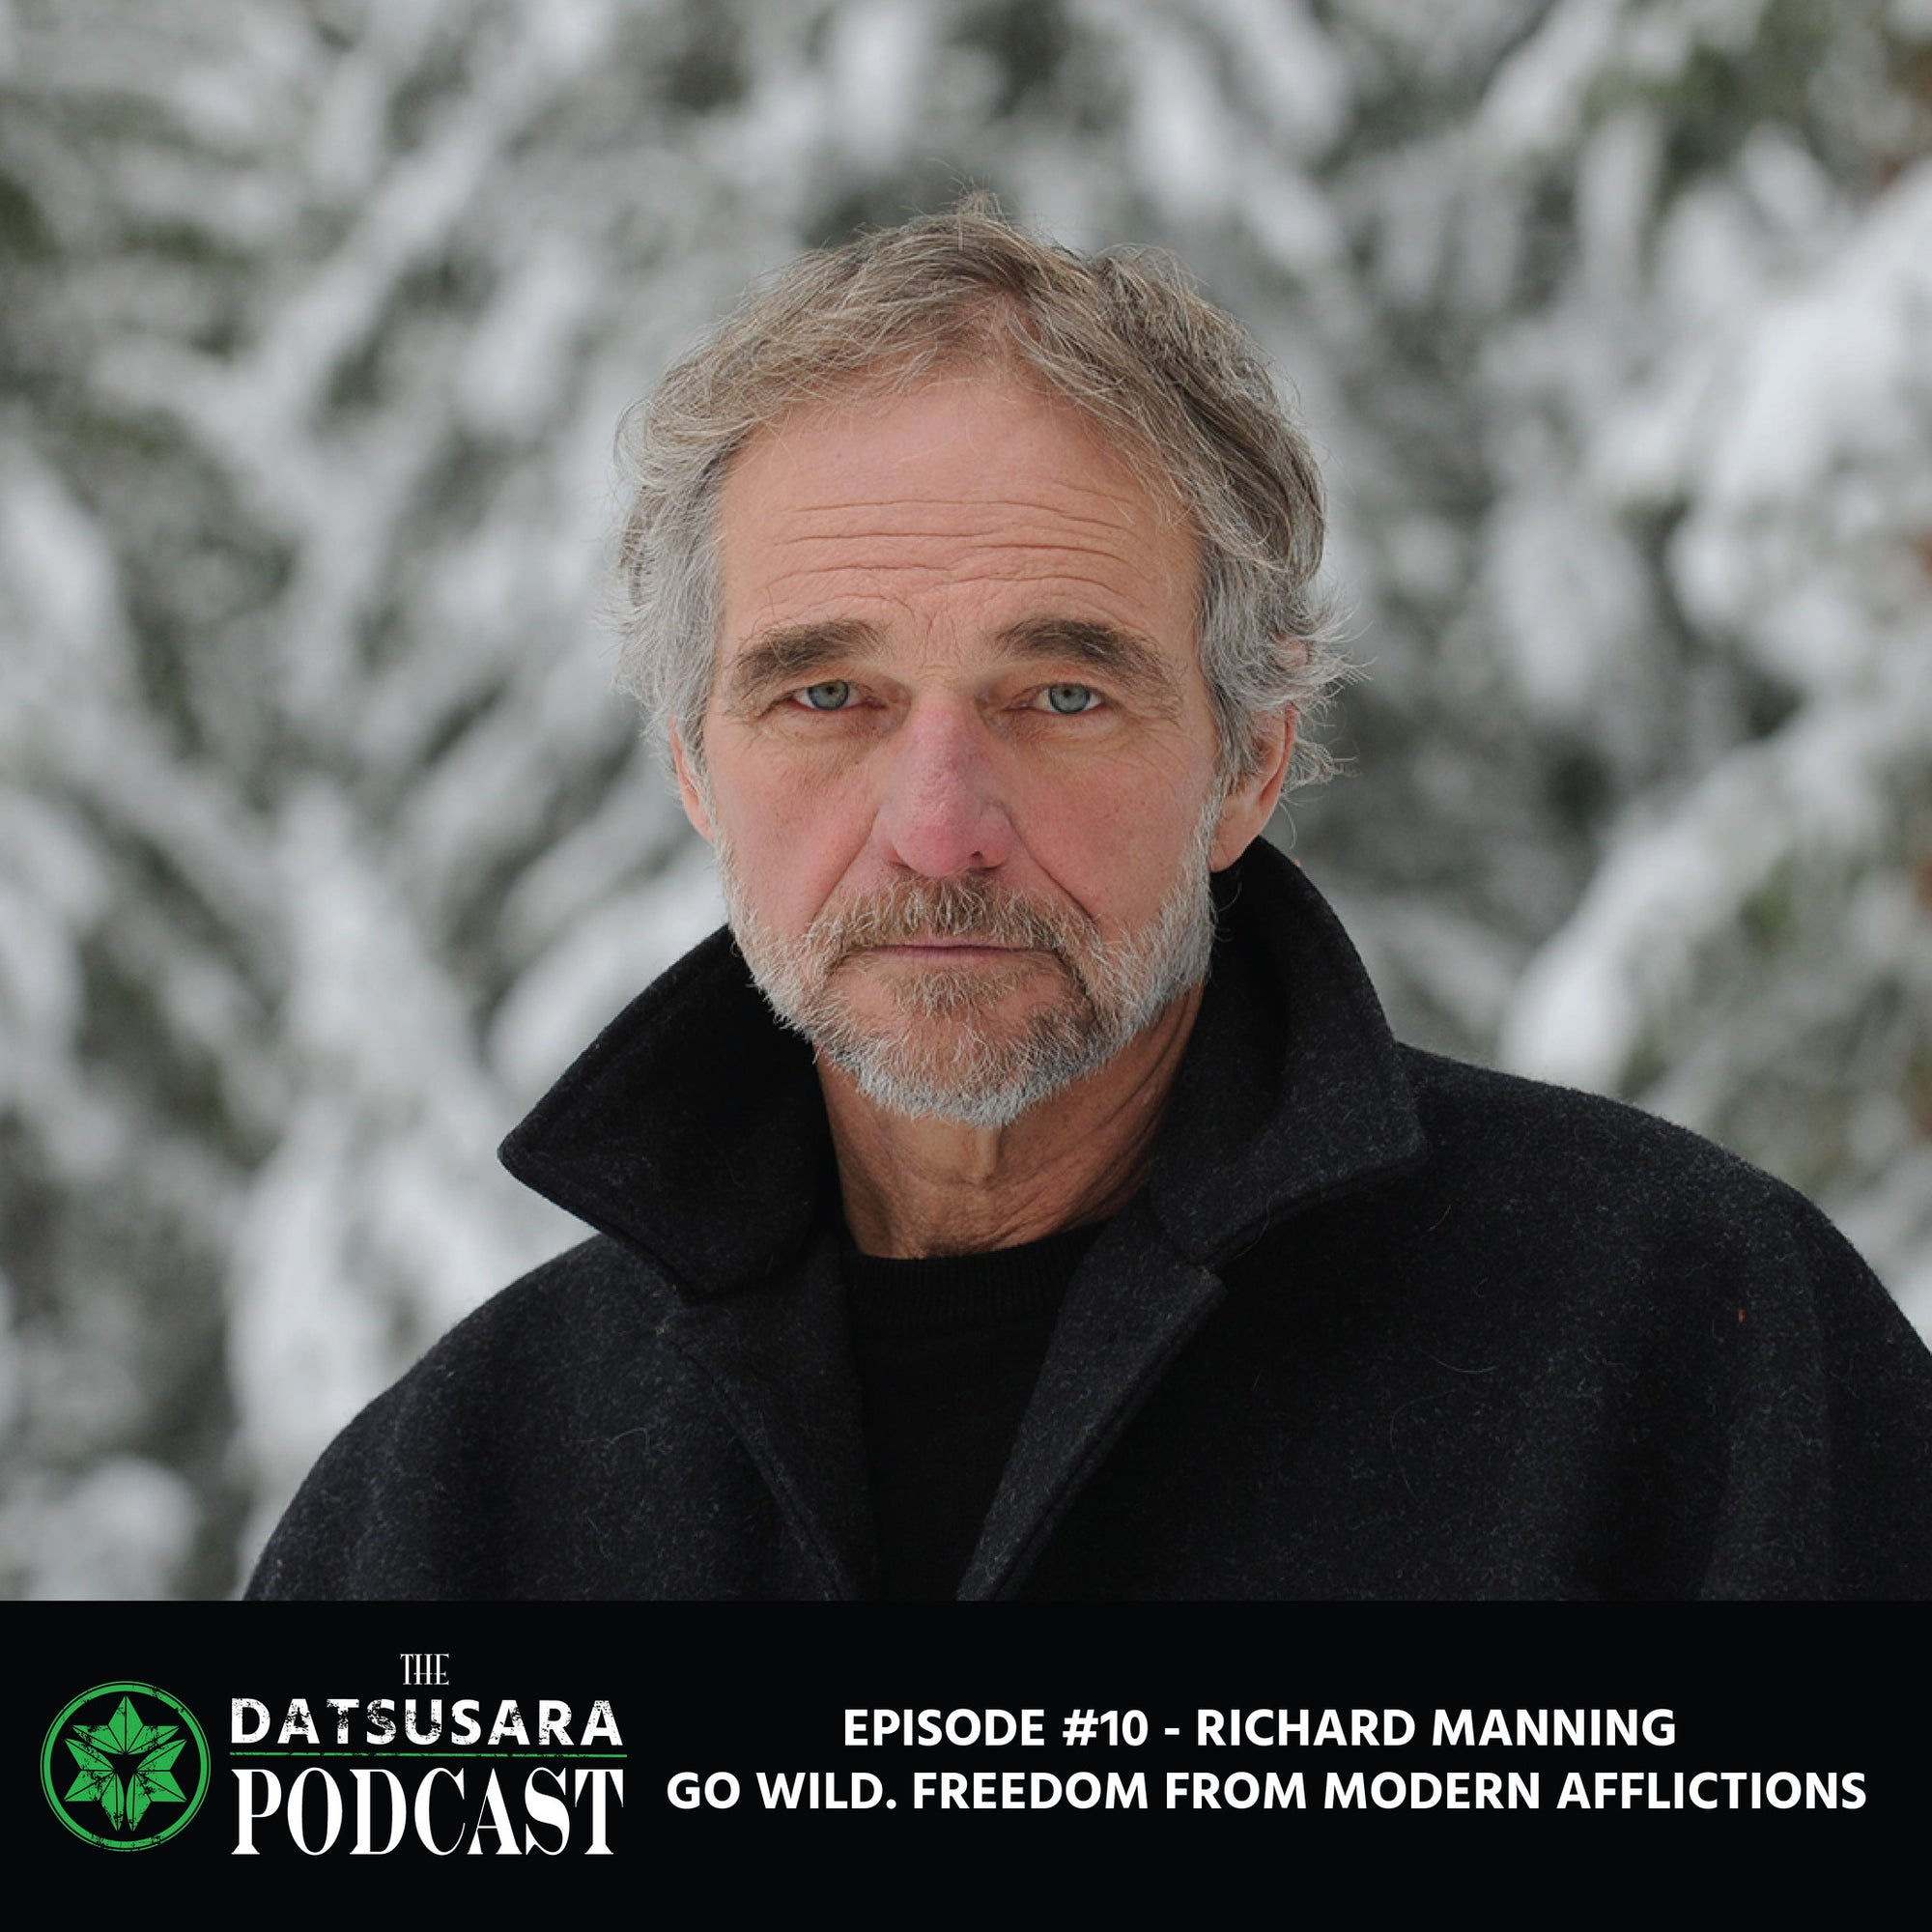 #10 - Richard Manning - Go Wild, Freedom from Modern Afflictions